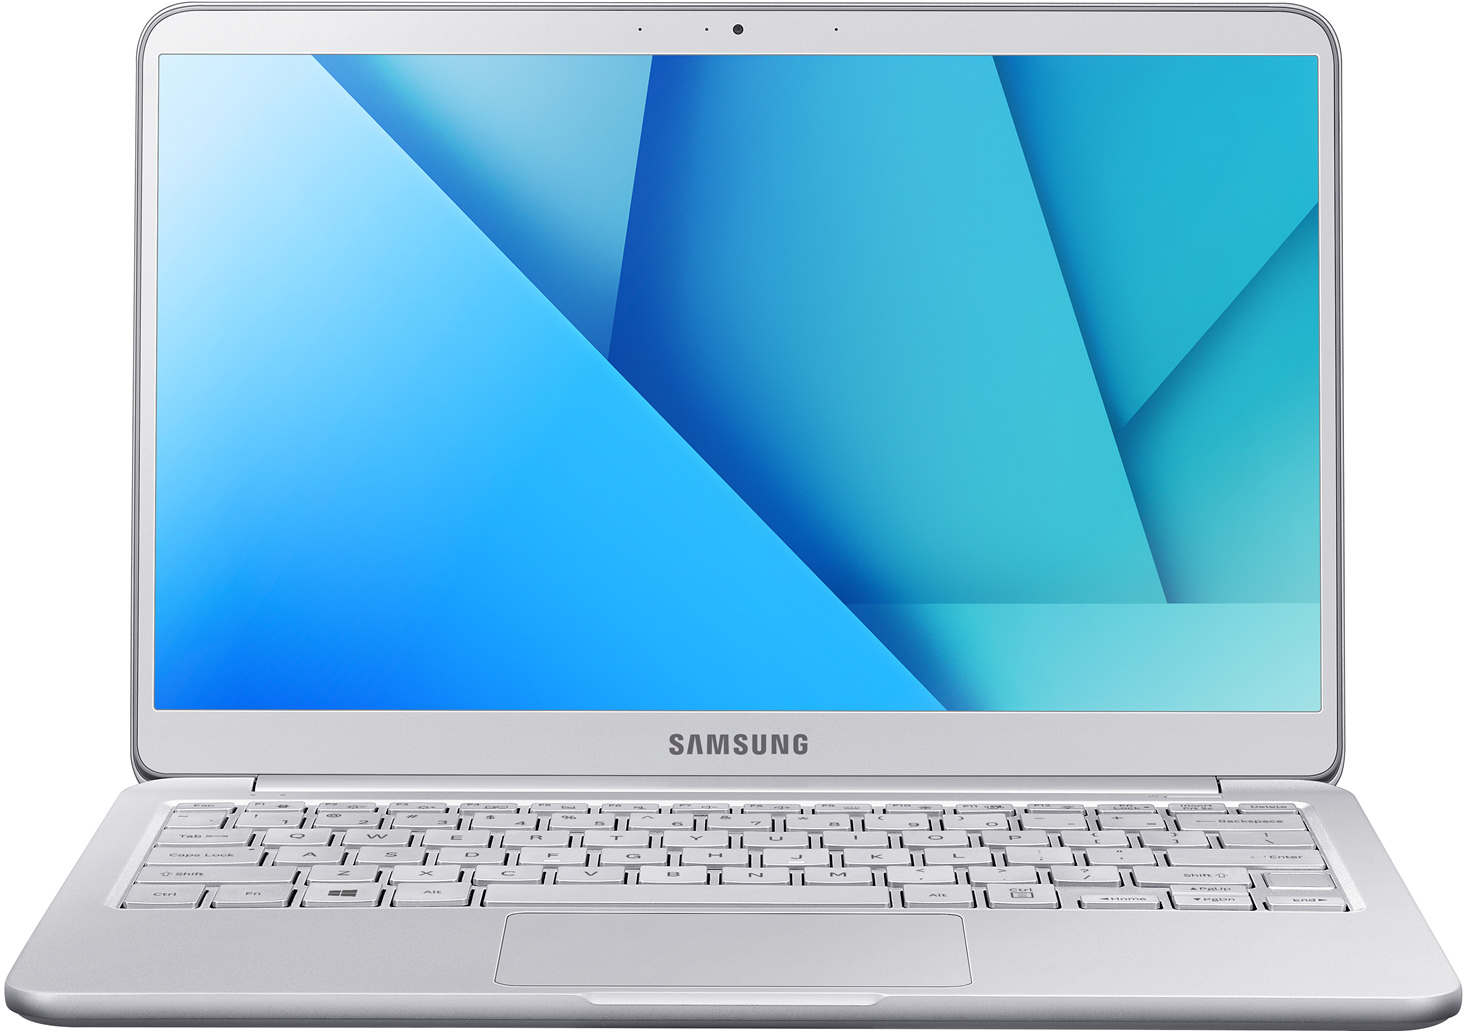 Notebook samsung 9 - The Key Selling Points Of The Samsung Notebook 9 Range Are Their Weight And Dimensions The 13 Model Is 13 9 Mm Thick Weighs 816 Grams Whereas The 15